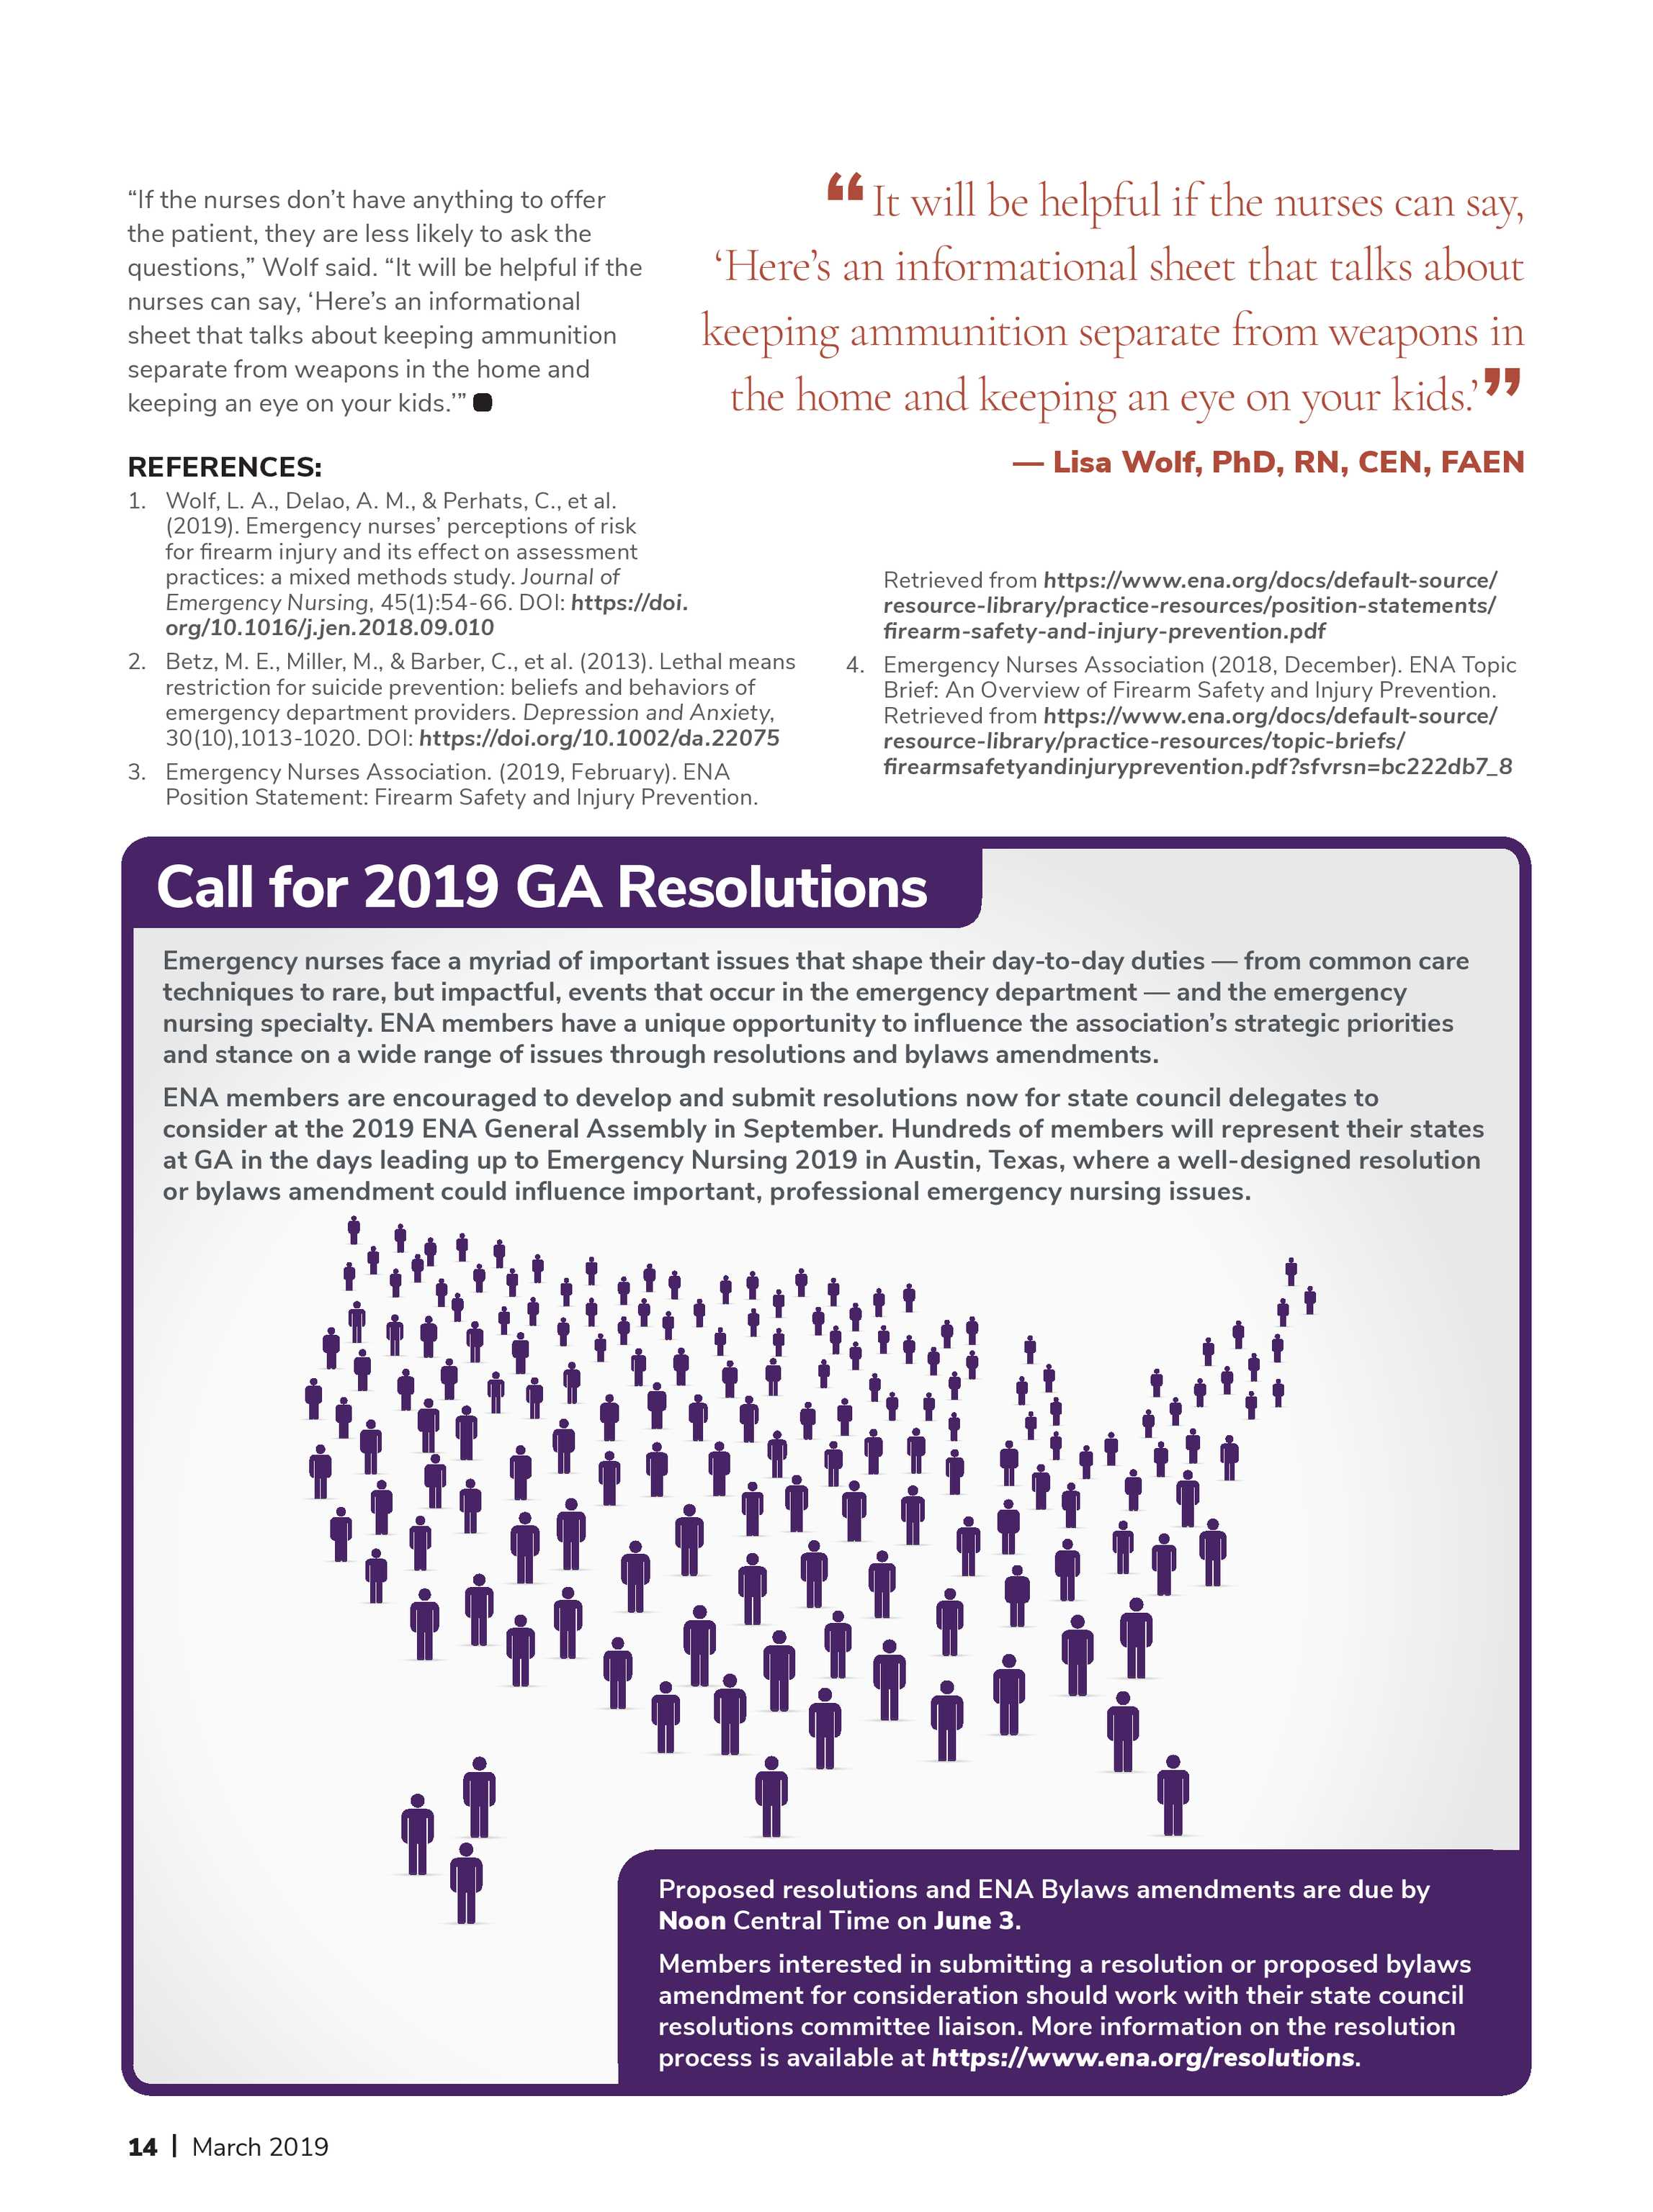 ENA Connection - March 2019 - page 14